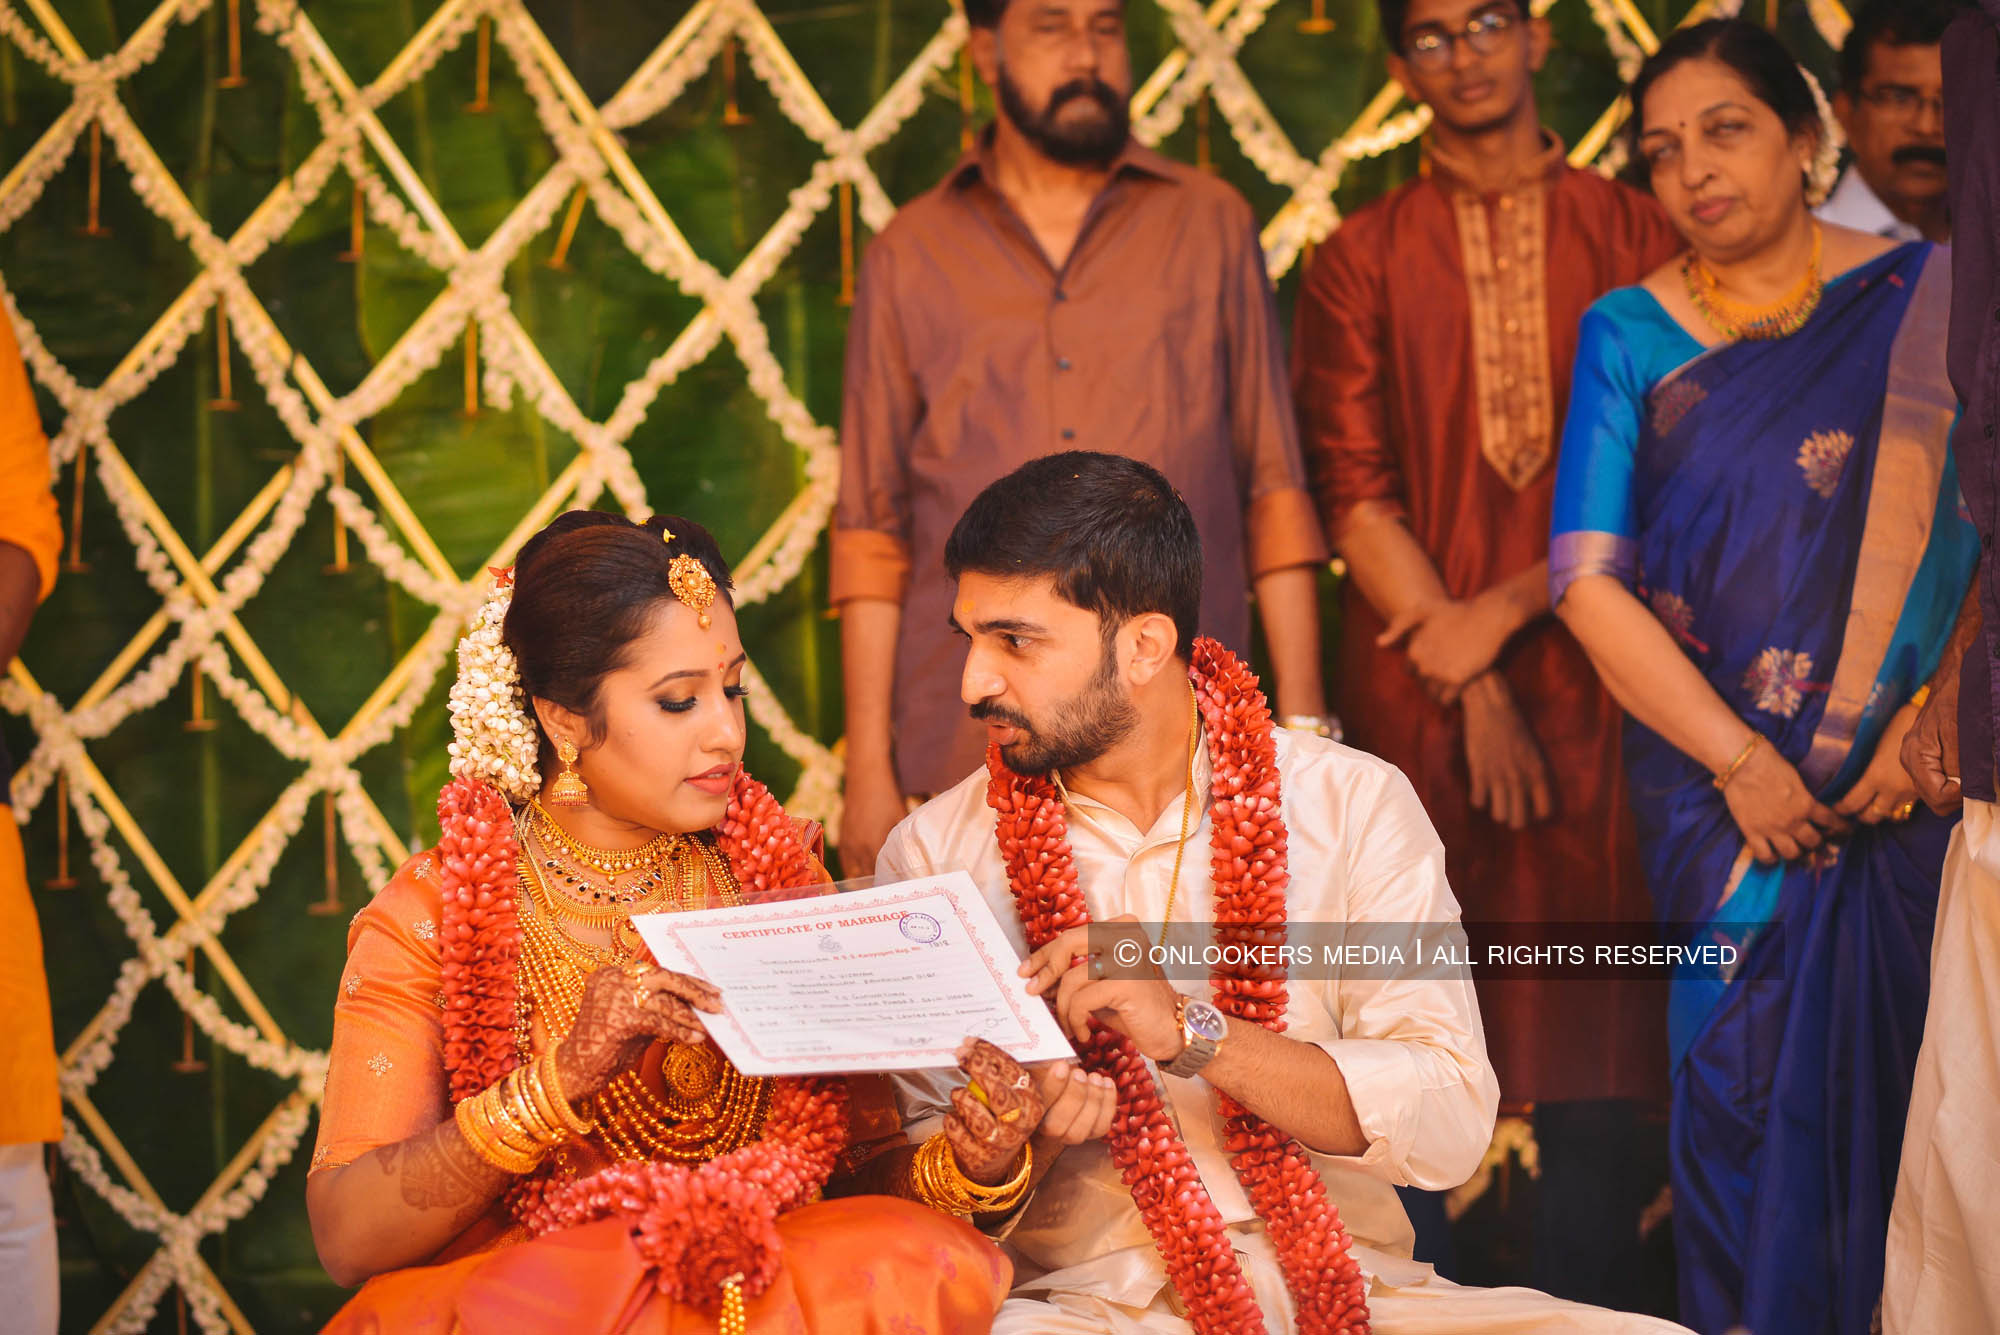 http://onlookersmedia.in/wp-content/uploads/2018/05/sreejith-vijay-wedding-stills-images-67.jpg